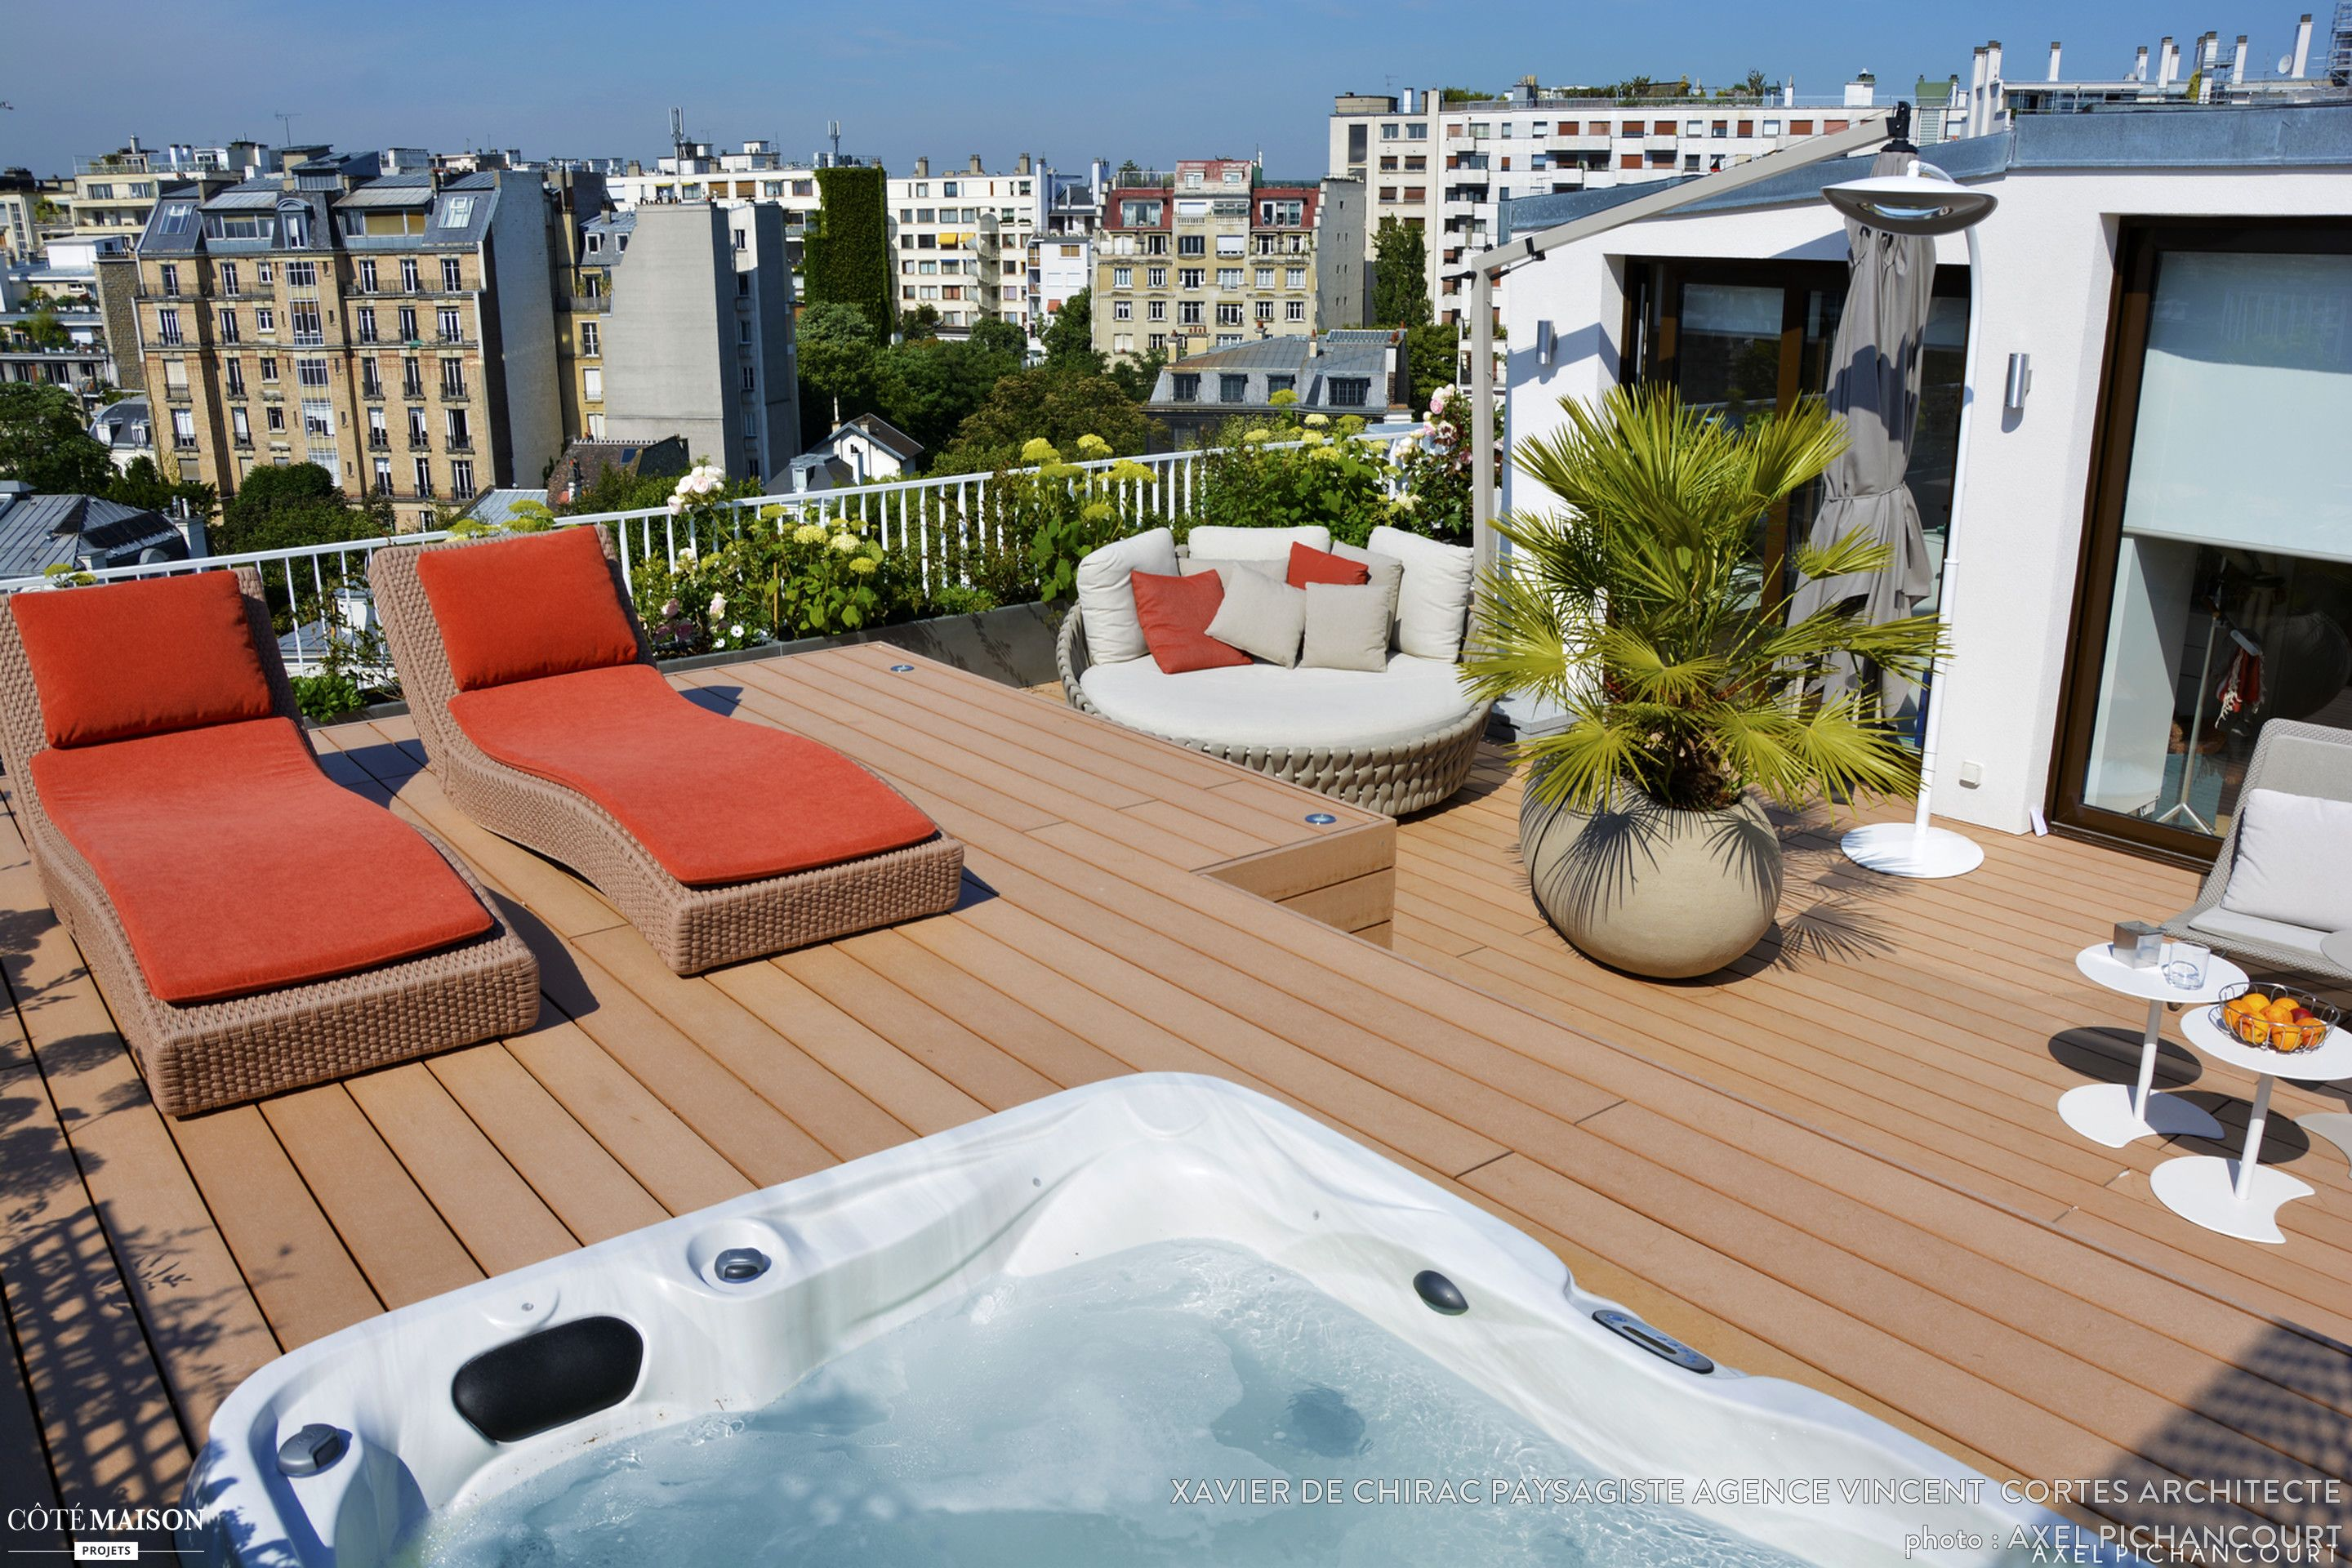 terrasse sur les toits avec jacuzzi transats et vue sur la ville my rooftop pinterest. Black Bedroom Furniture Sets. Home Design Ideas